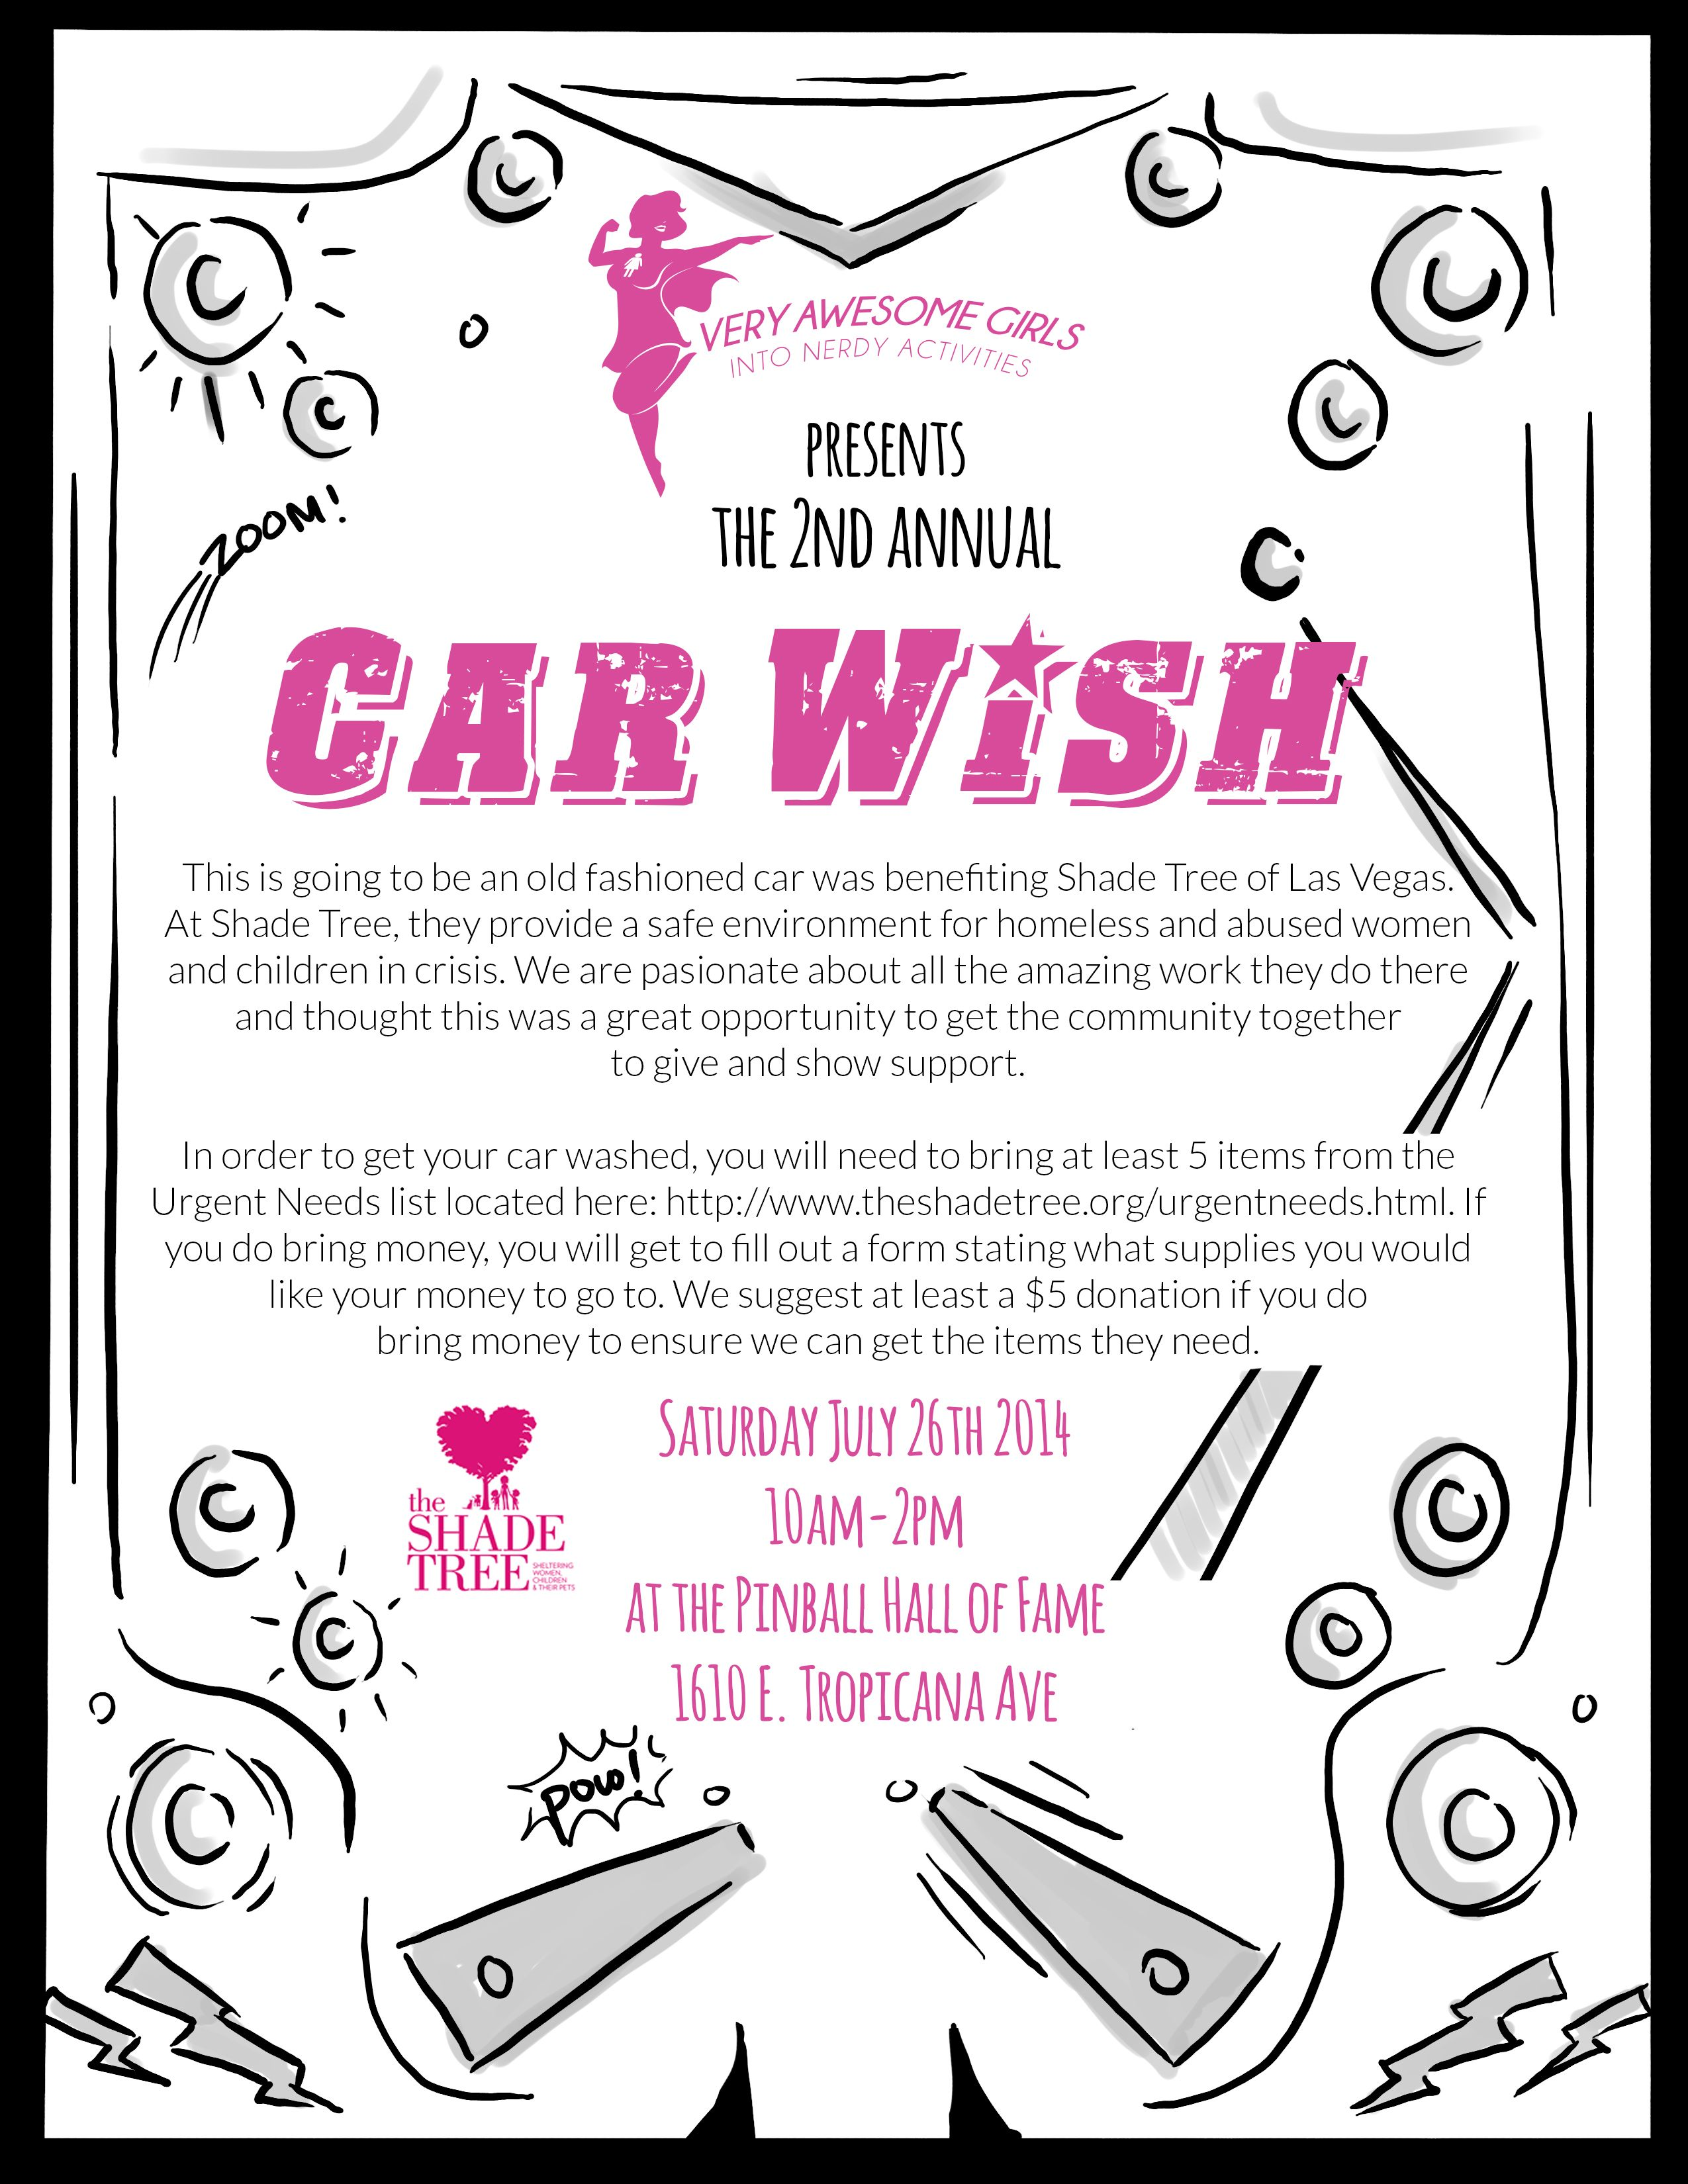 The car wash will be held from 9 am2 pm at the most